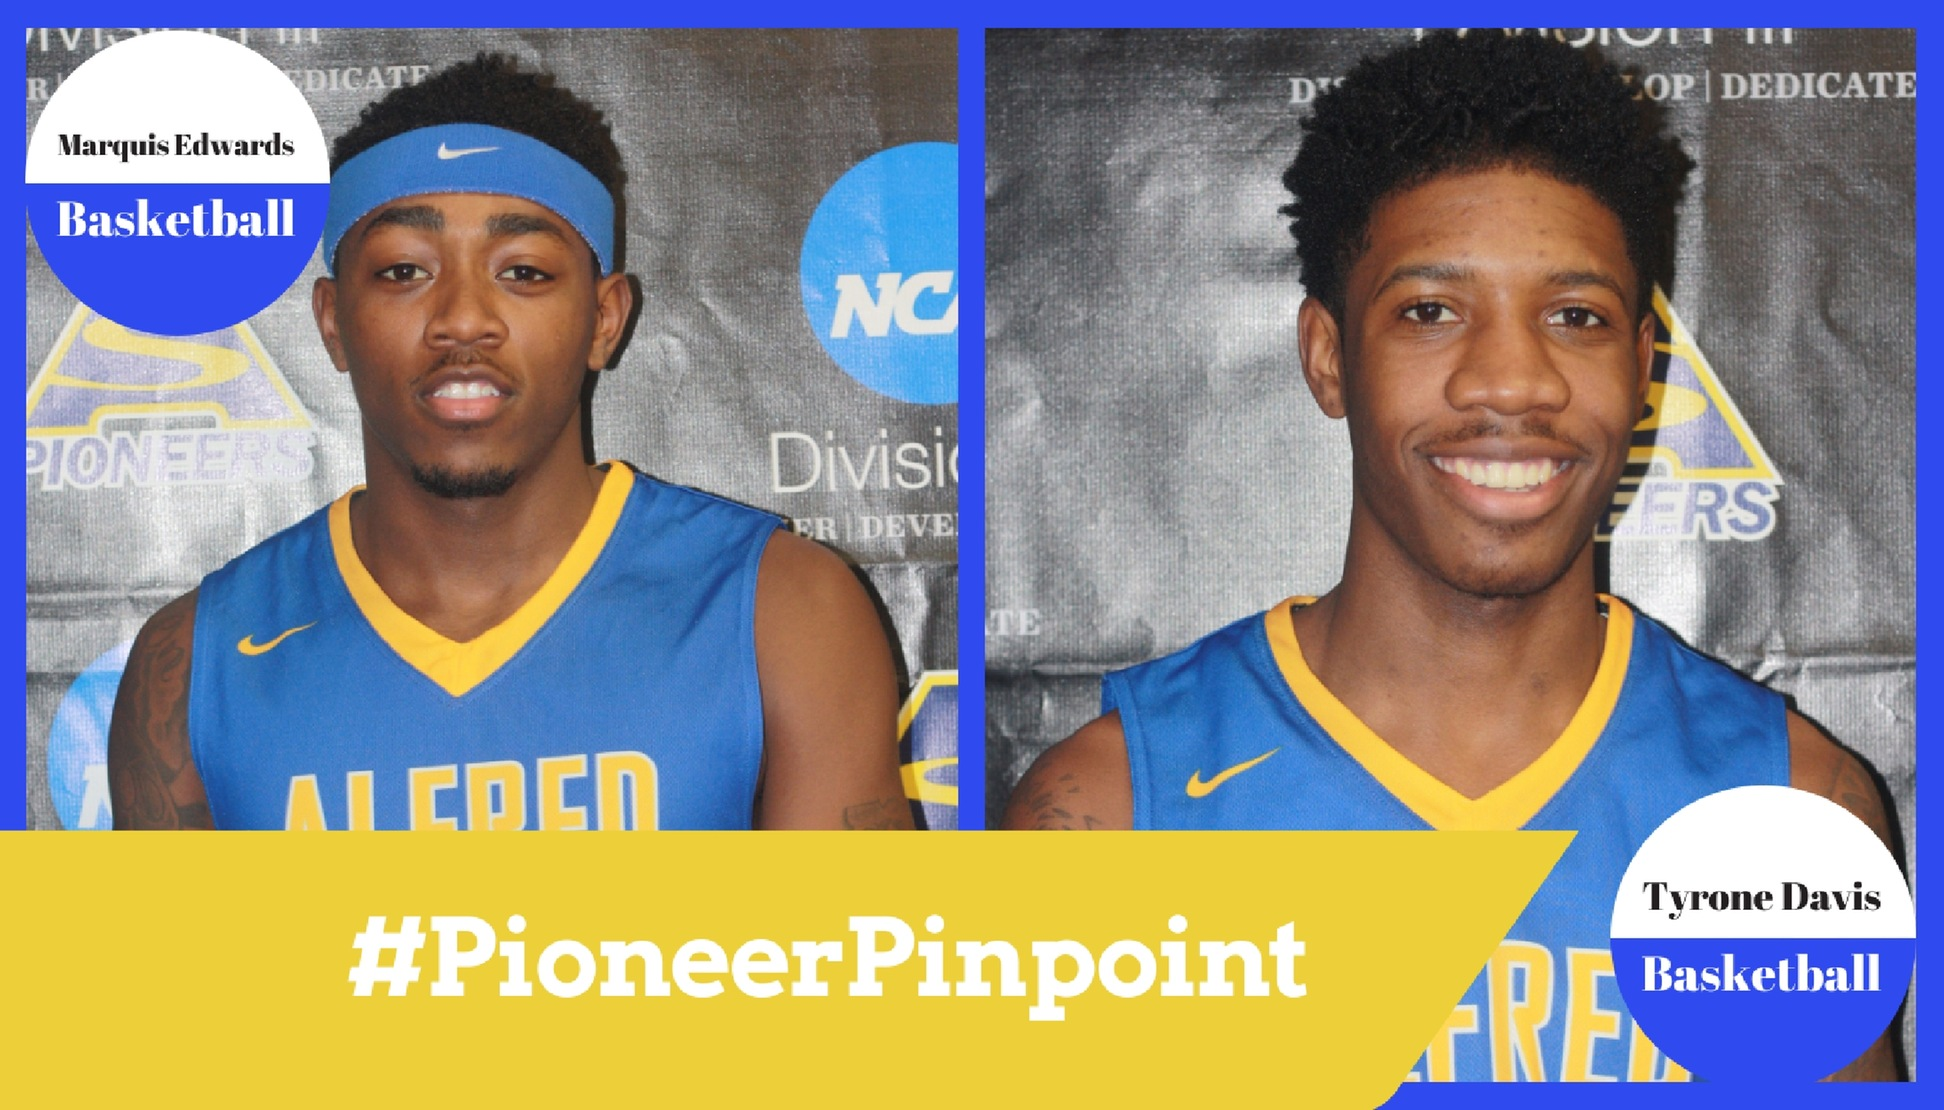 Edwards and Davis Share #PioneerPinpoint Honors